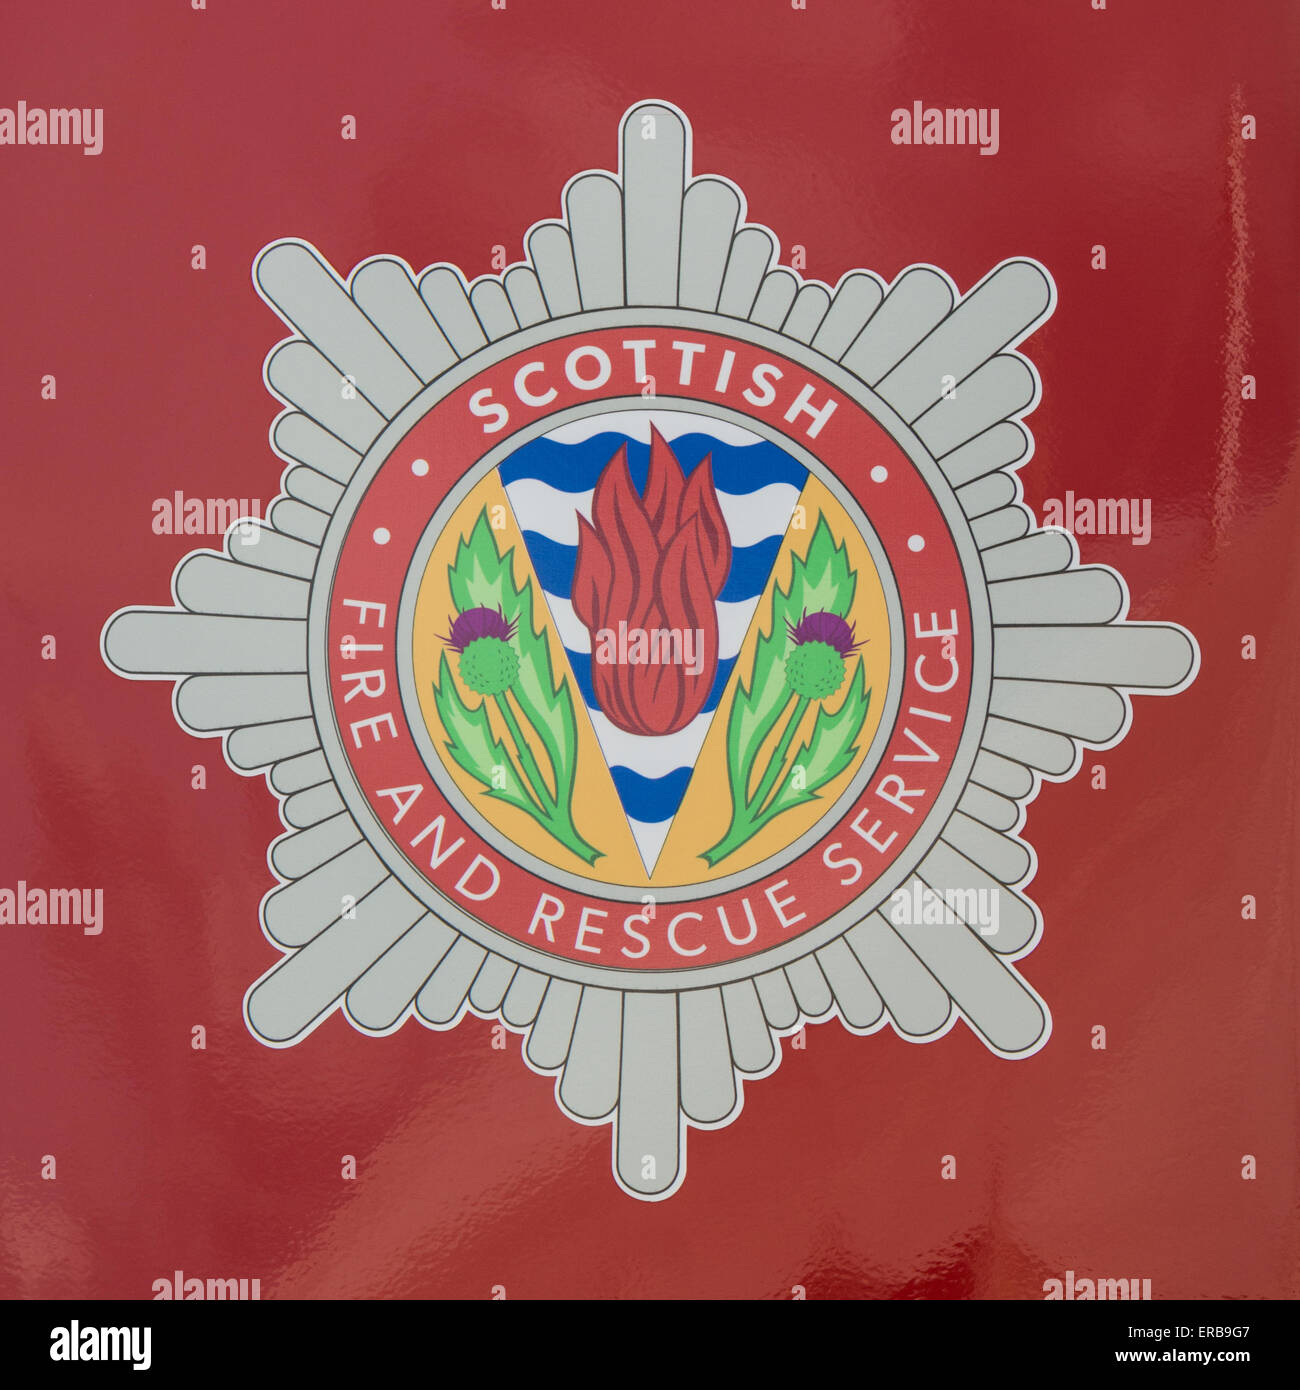 Scottish Fire and Rescue Service badge on the side of a fire engine - Stock Image